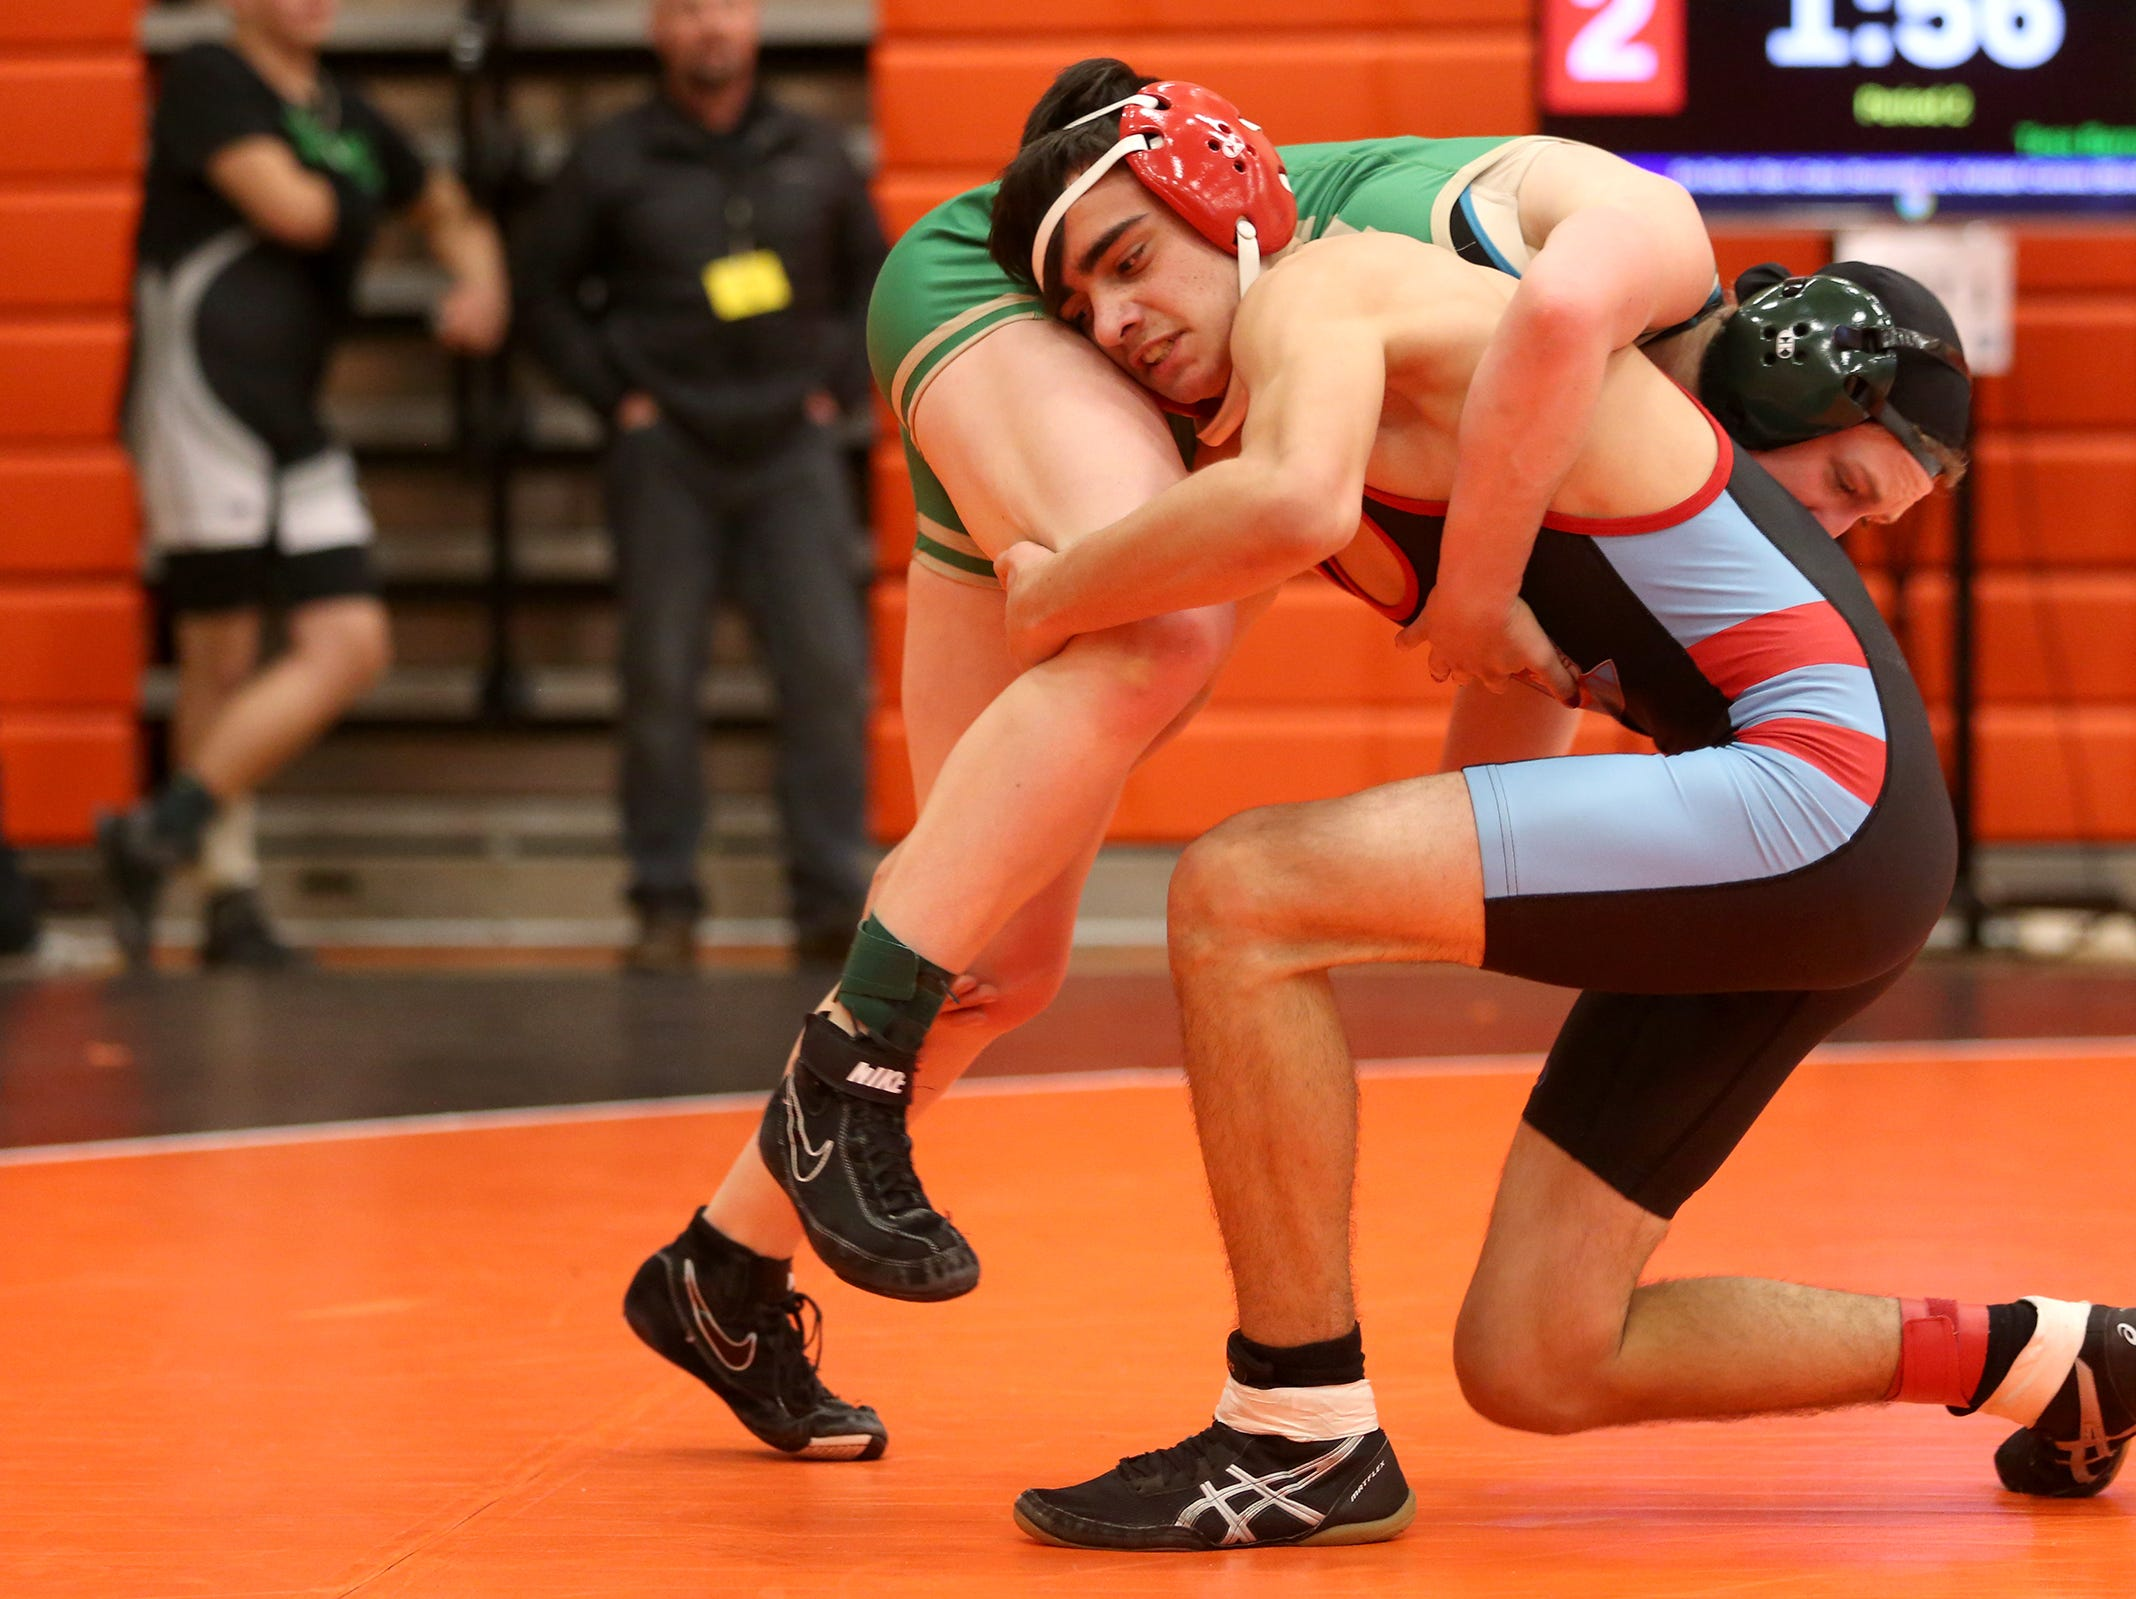 South Salem's Hunter Downs-Getchell (right) takes on McKay's Tess Barnett in the 129 pound weight class during the Mountain Valley Conference district wrestling tournament at Sprague High School in Salem on Friday, Feb. 15, 2019.